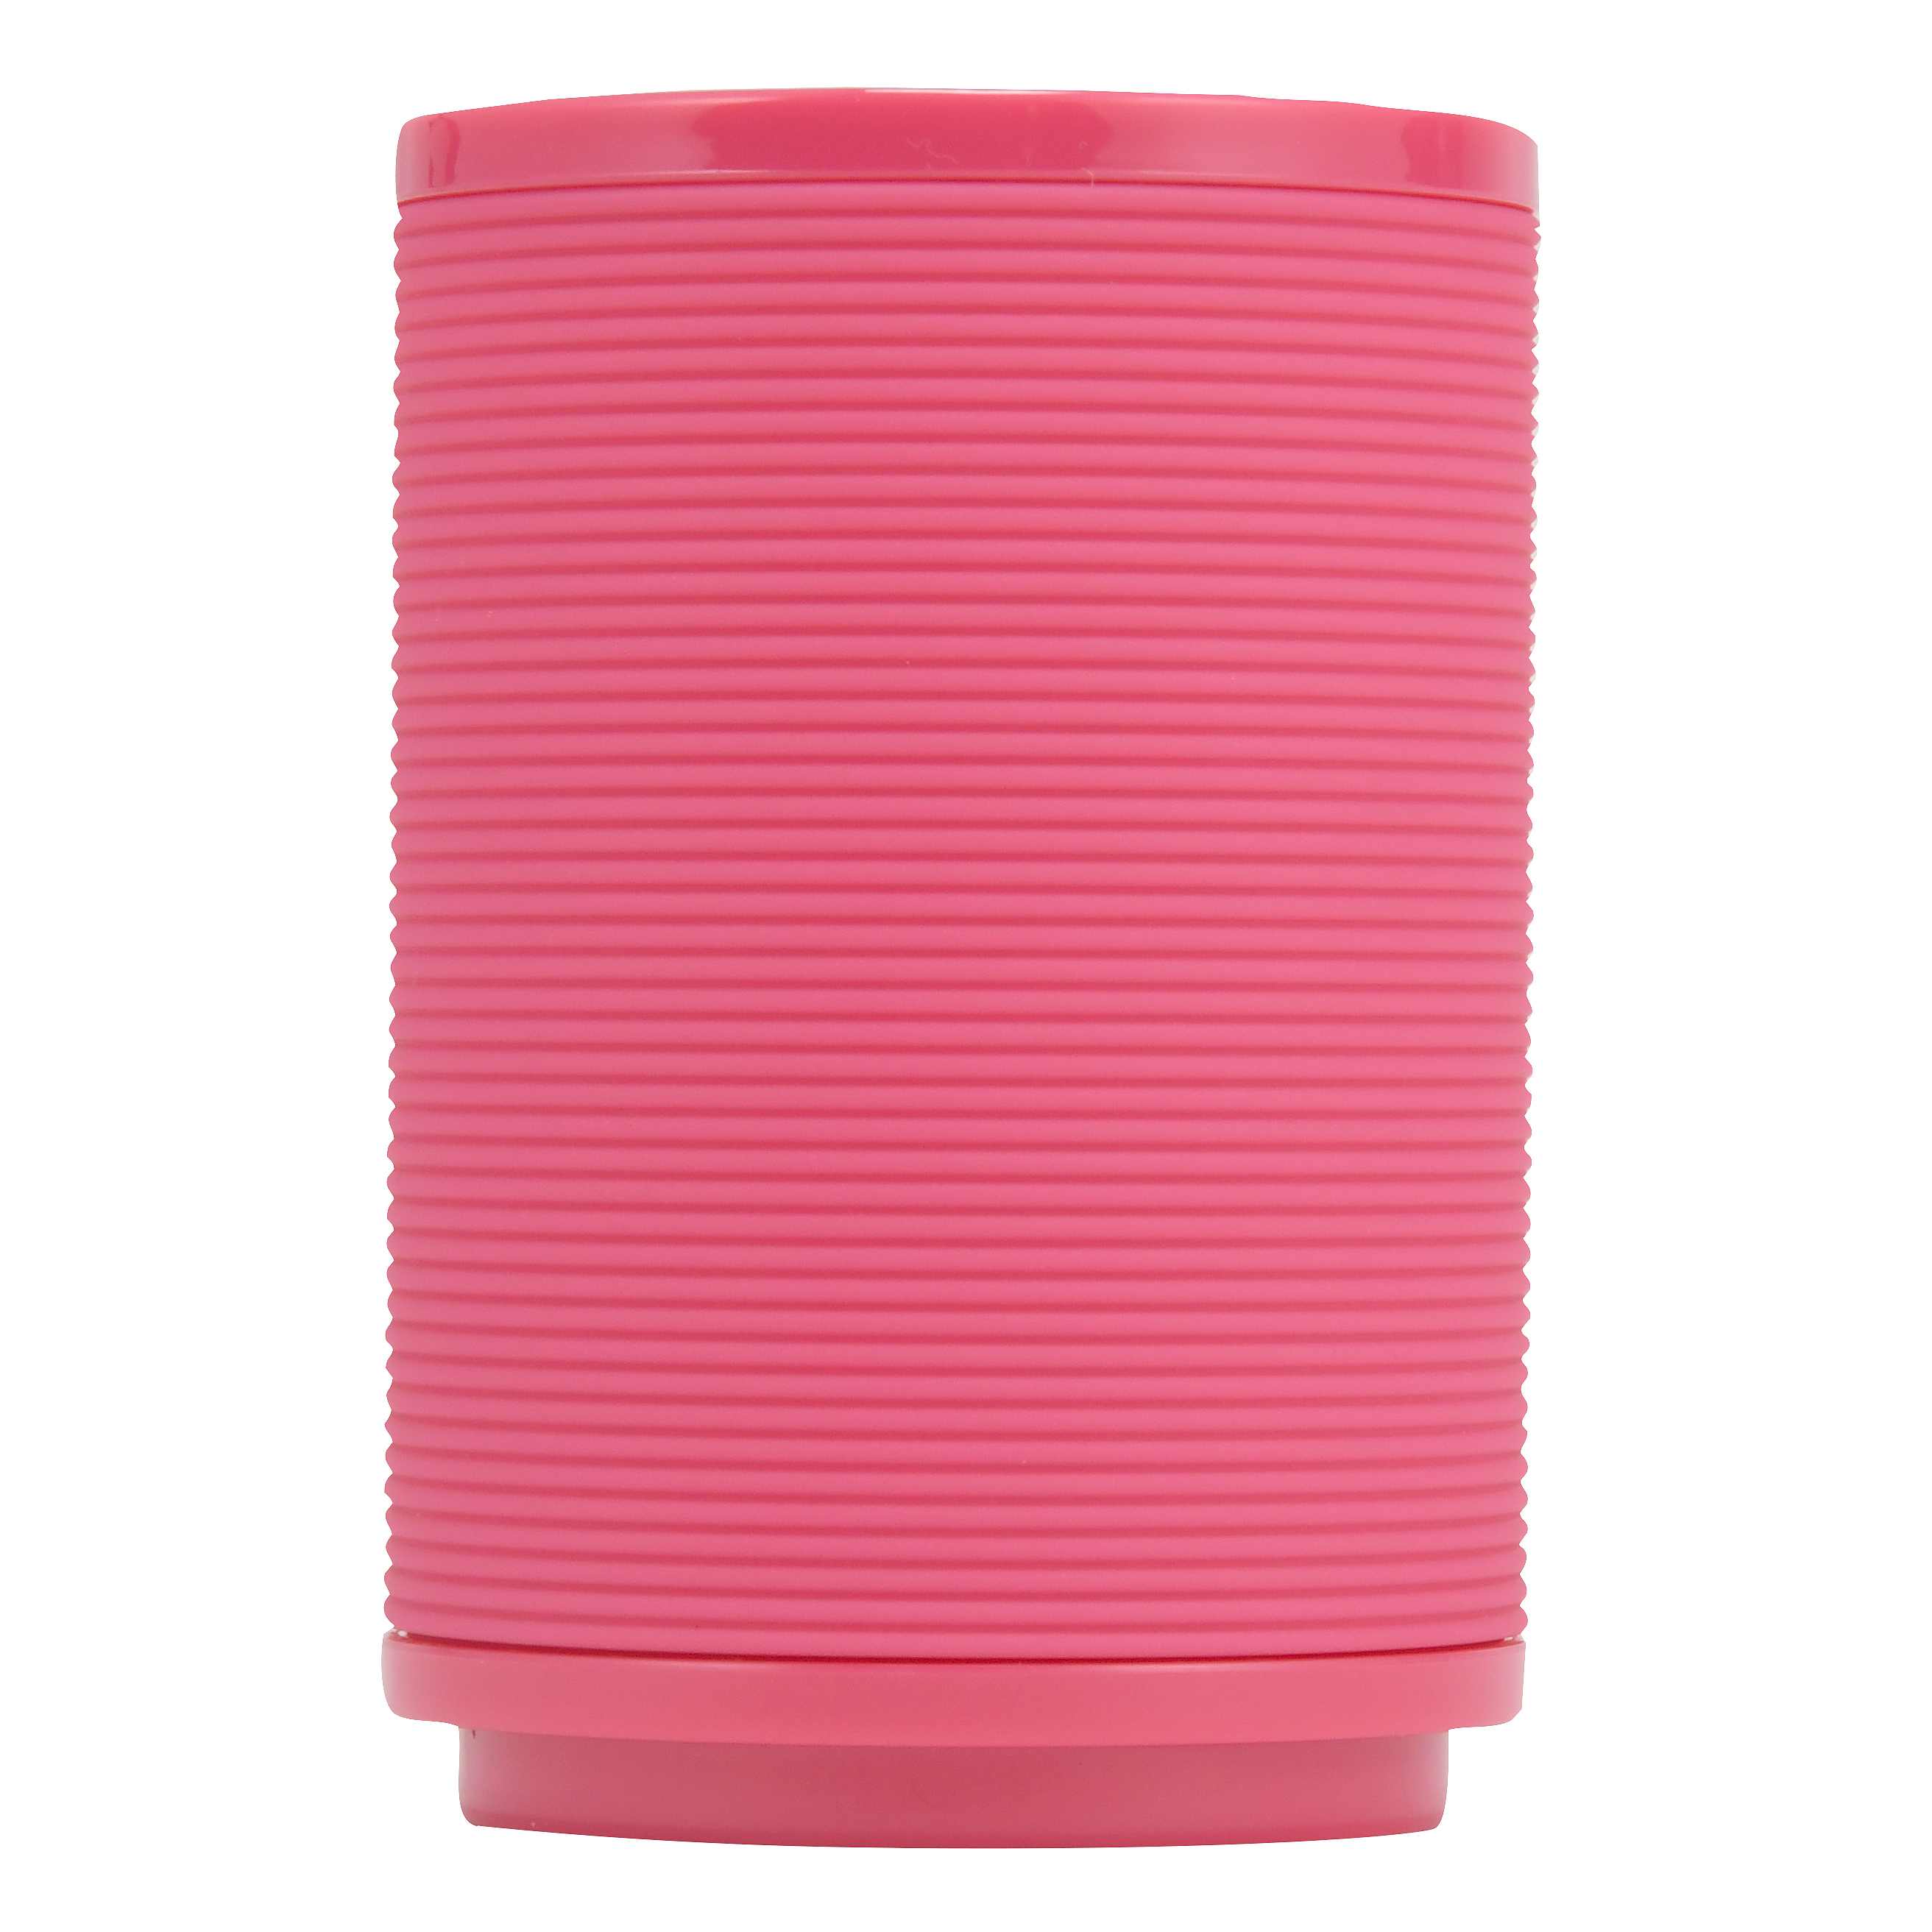 Mainstays Soft Touch Pink Toothbrush Holder, 1 Each